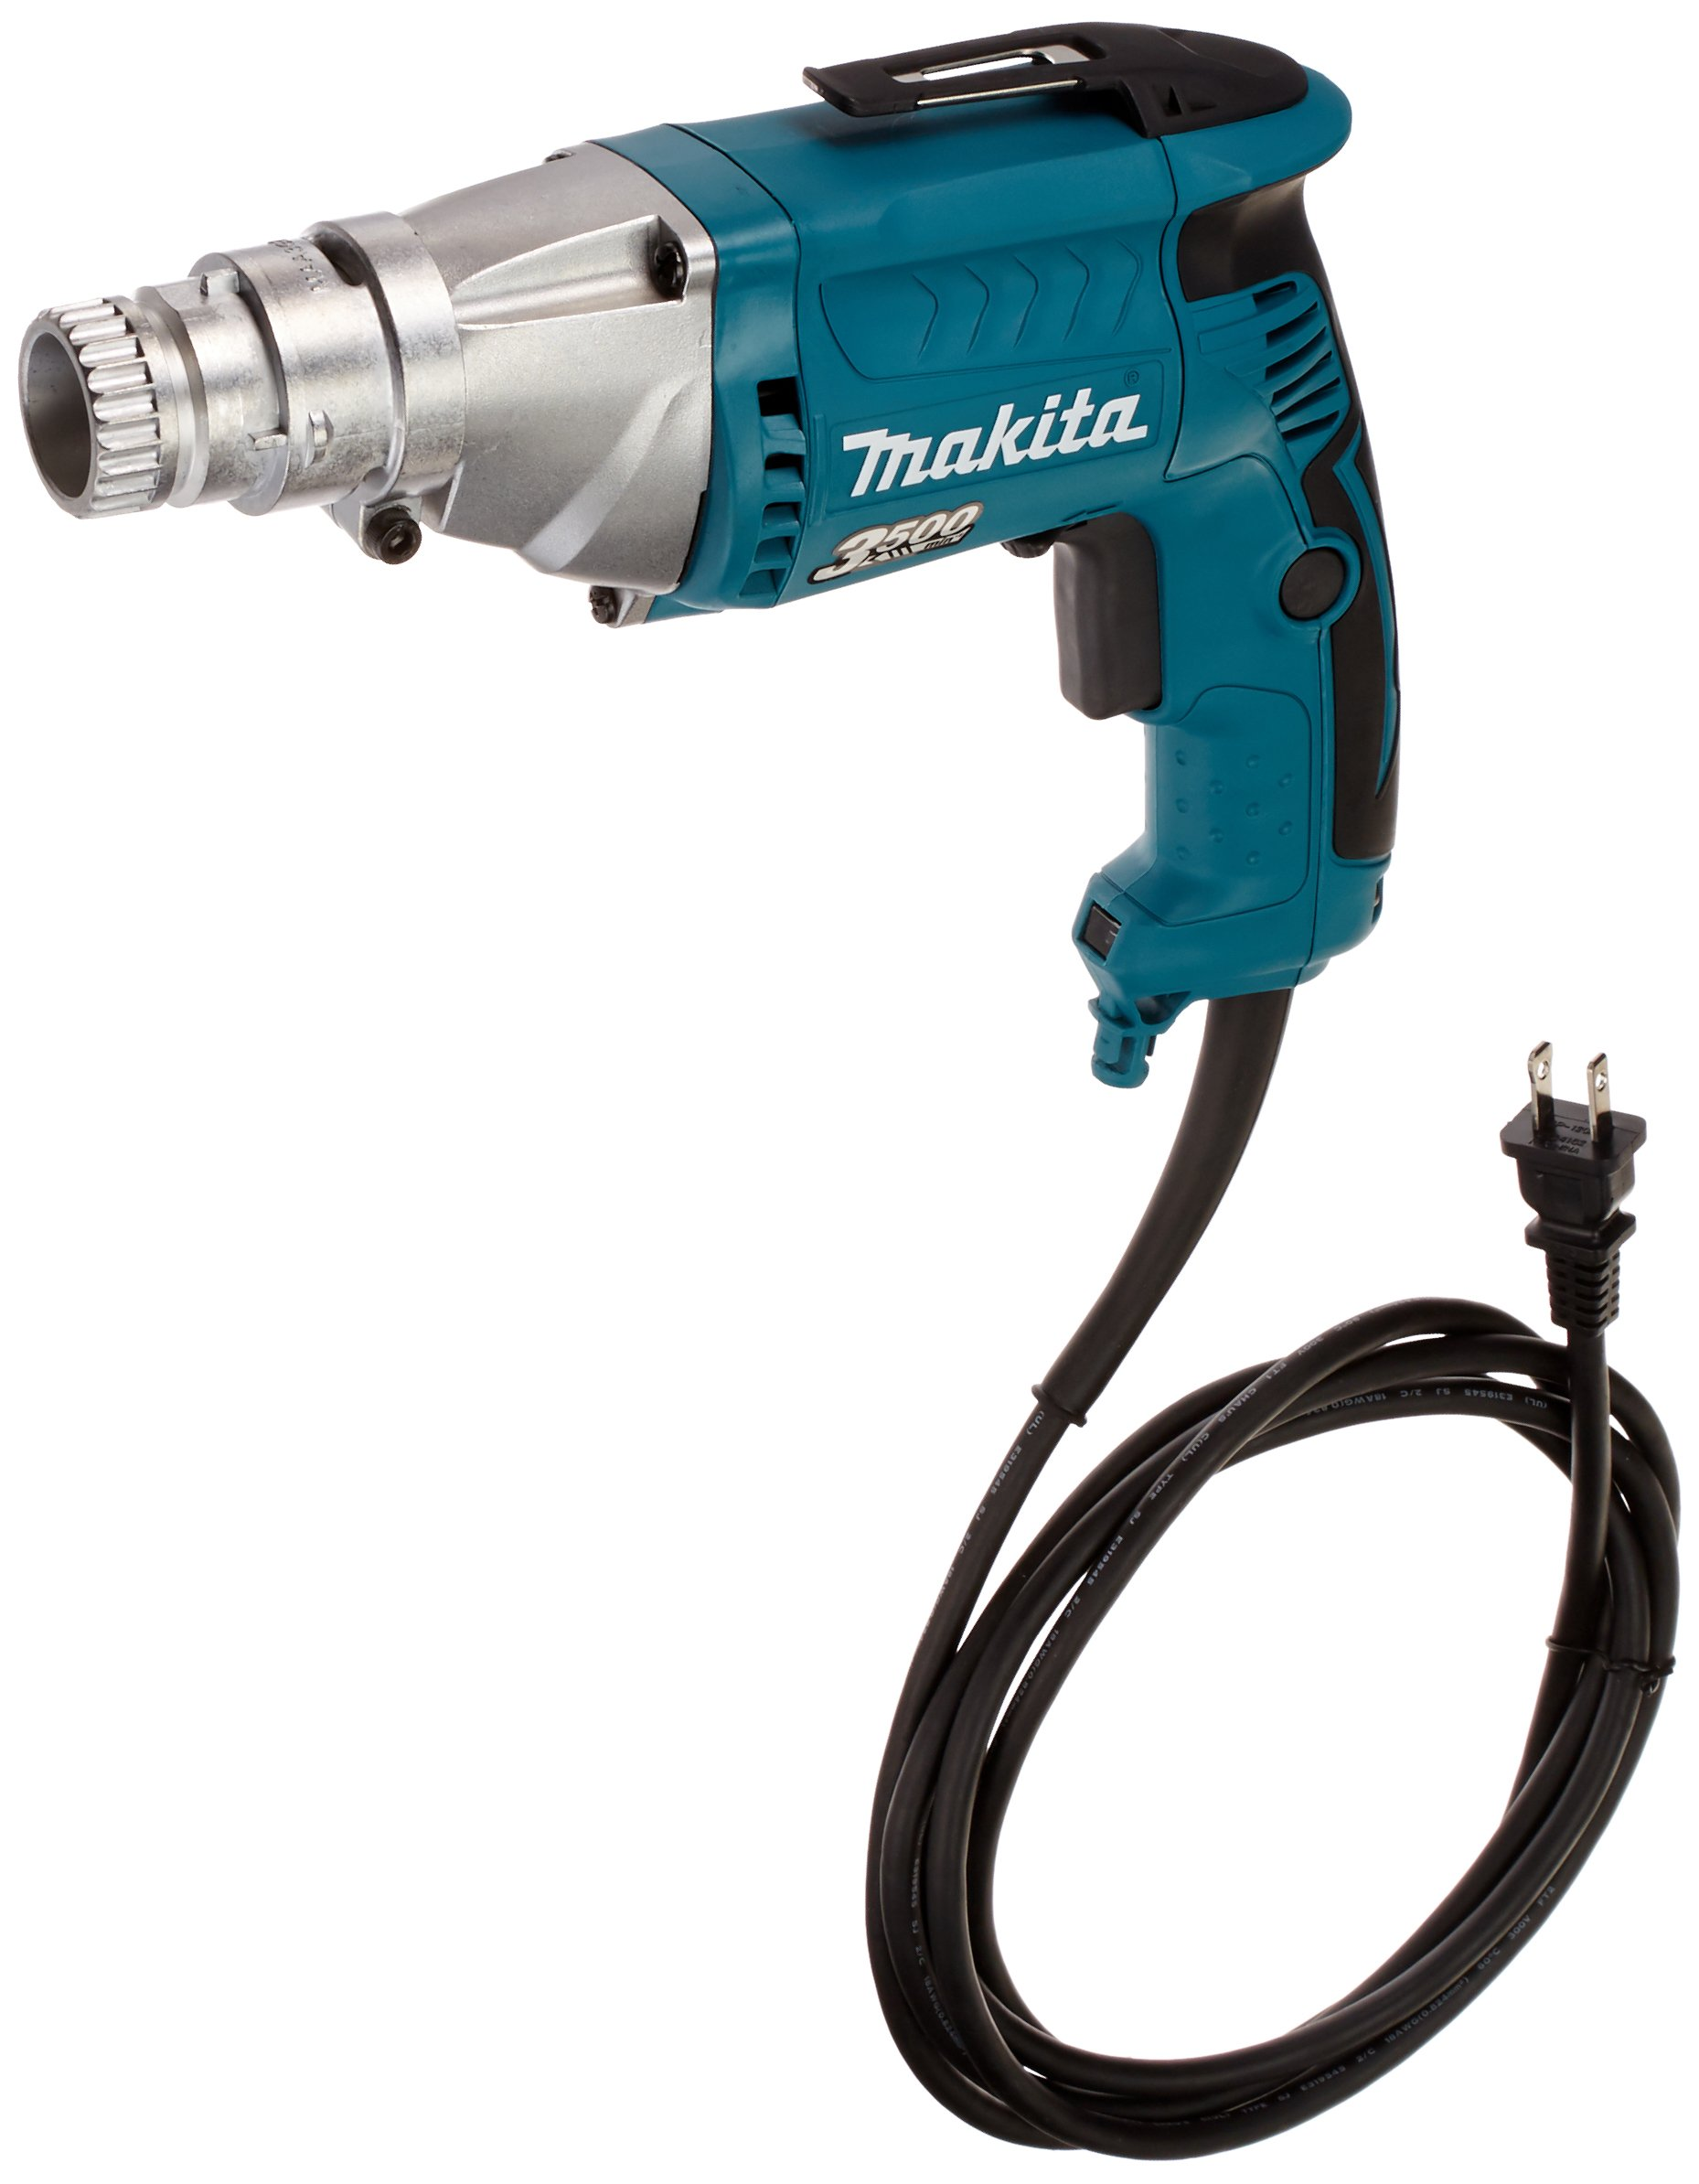 Simpson Strong Tie MAFS3500 Quik Drive 0-3500 RPM Screwgun Motor for Makita by Simpson Strong-Tie